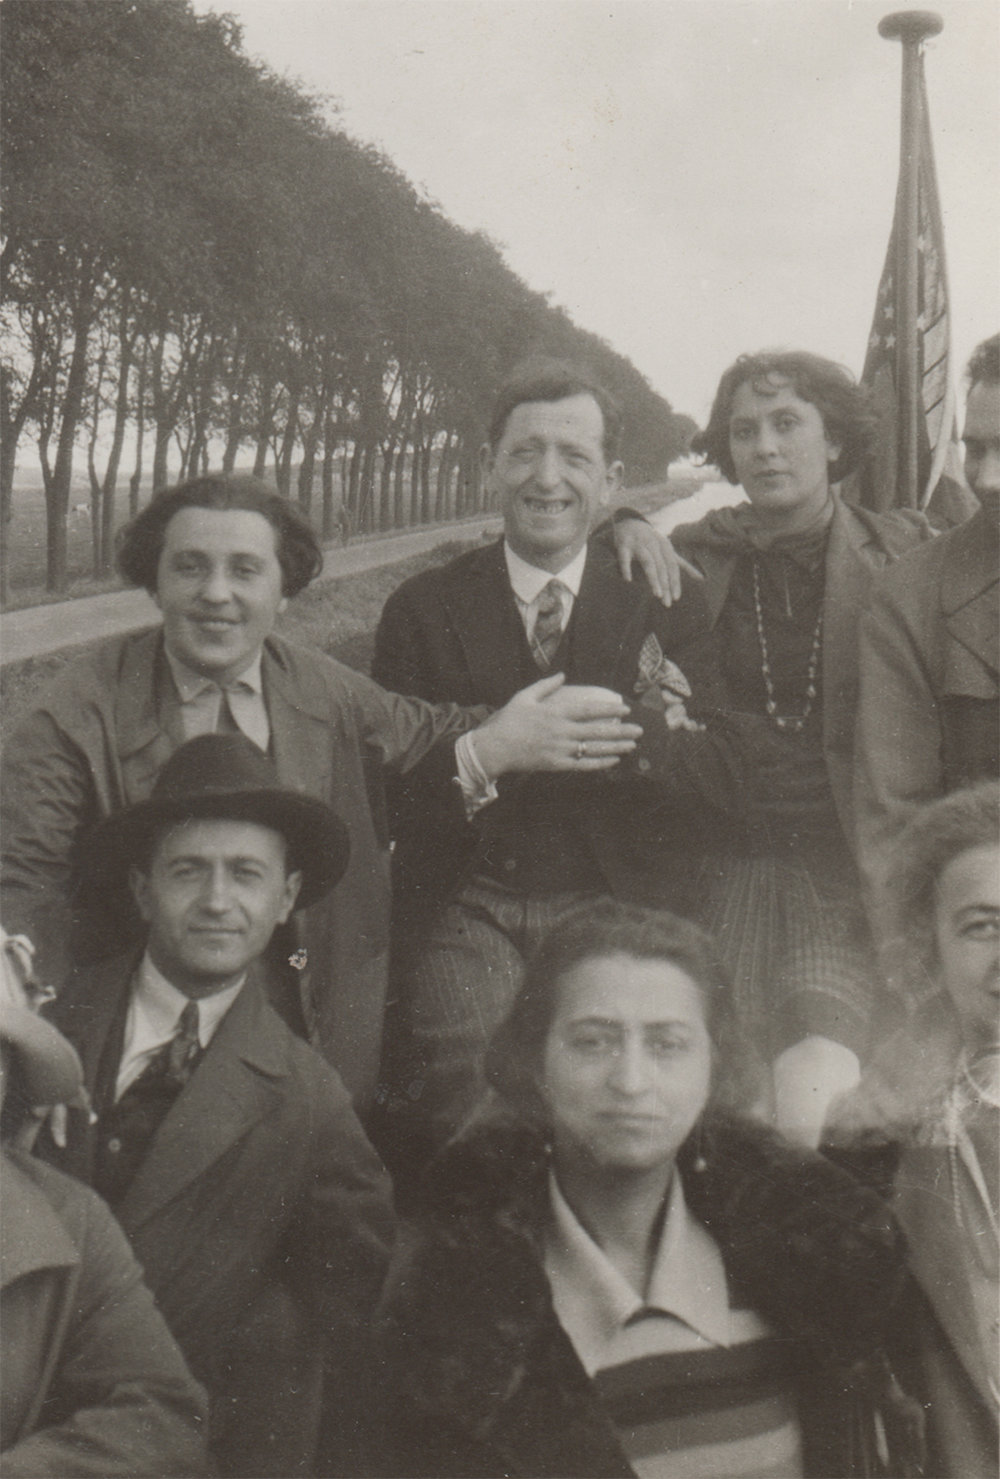 Photo of actor troupe on the way to Marten Island, Netherlands. 1928